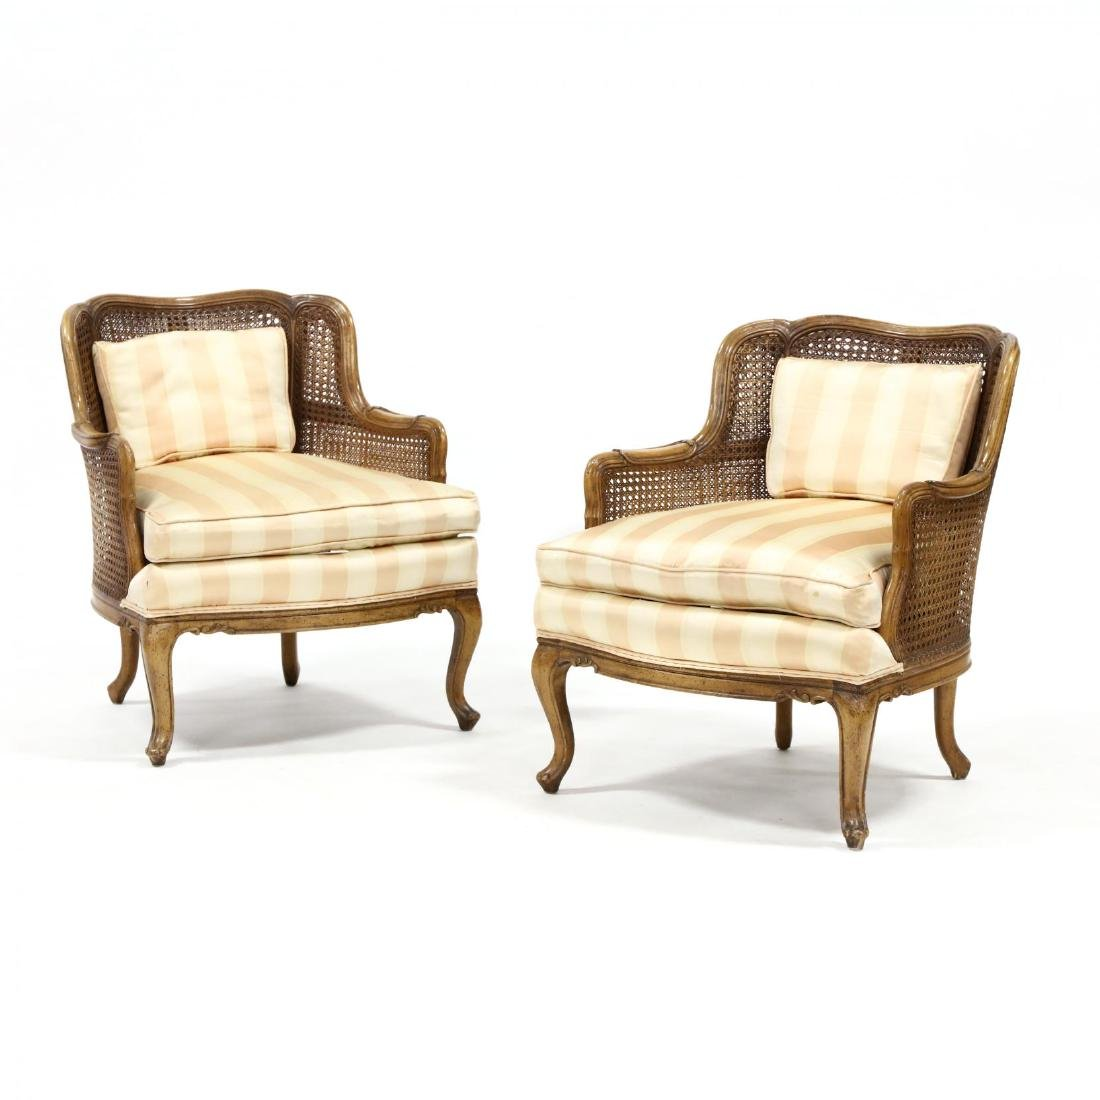 Jamestown Lounge Co., Pair of Louis XV Style Bergere